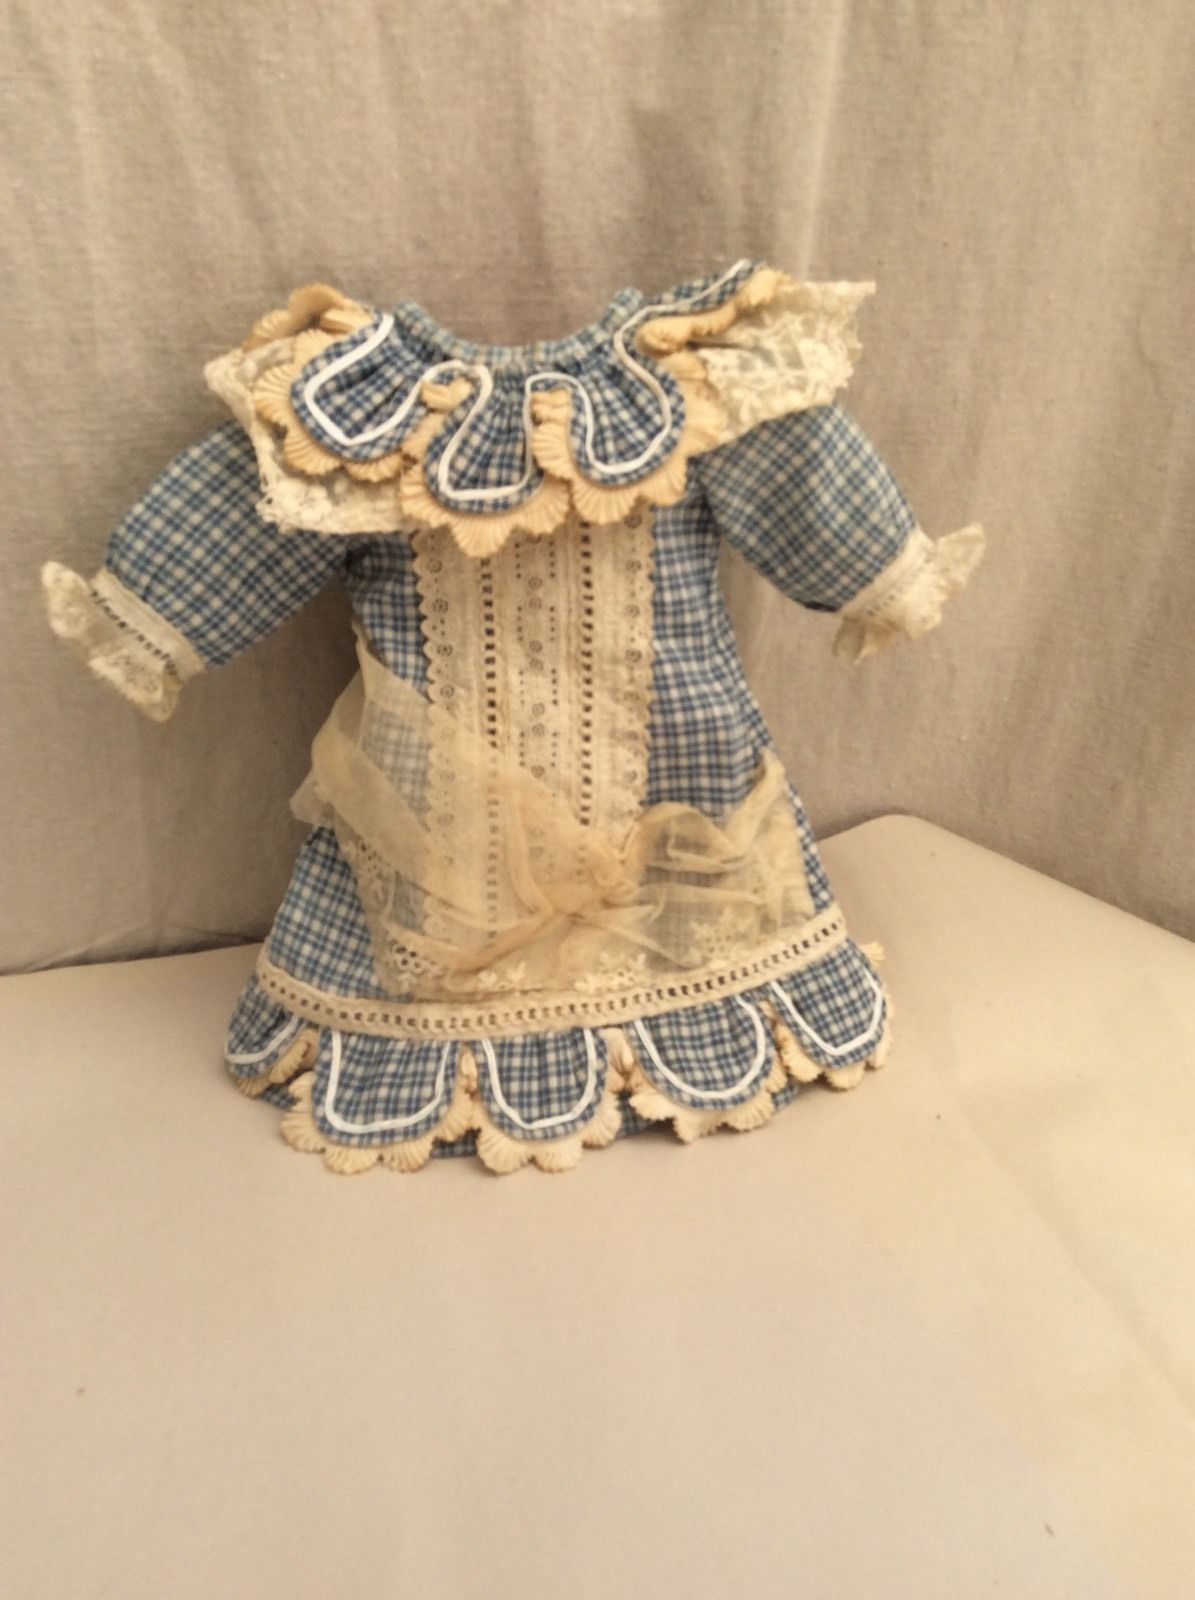 Petite Size Blue White Dress for French Bebes | eBay